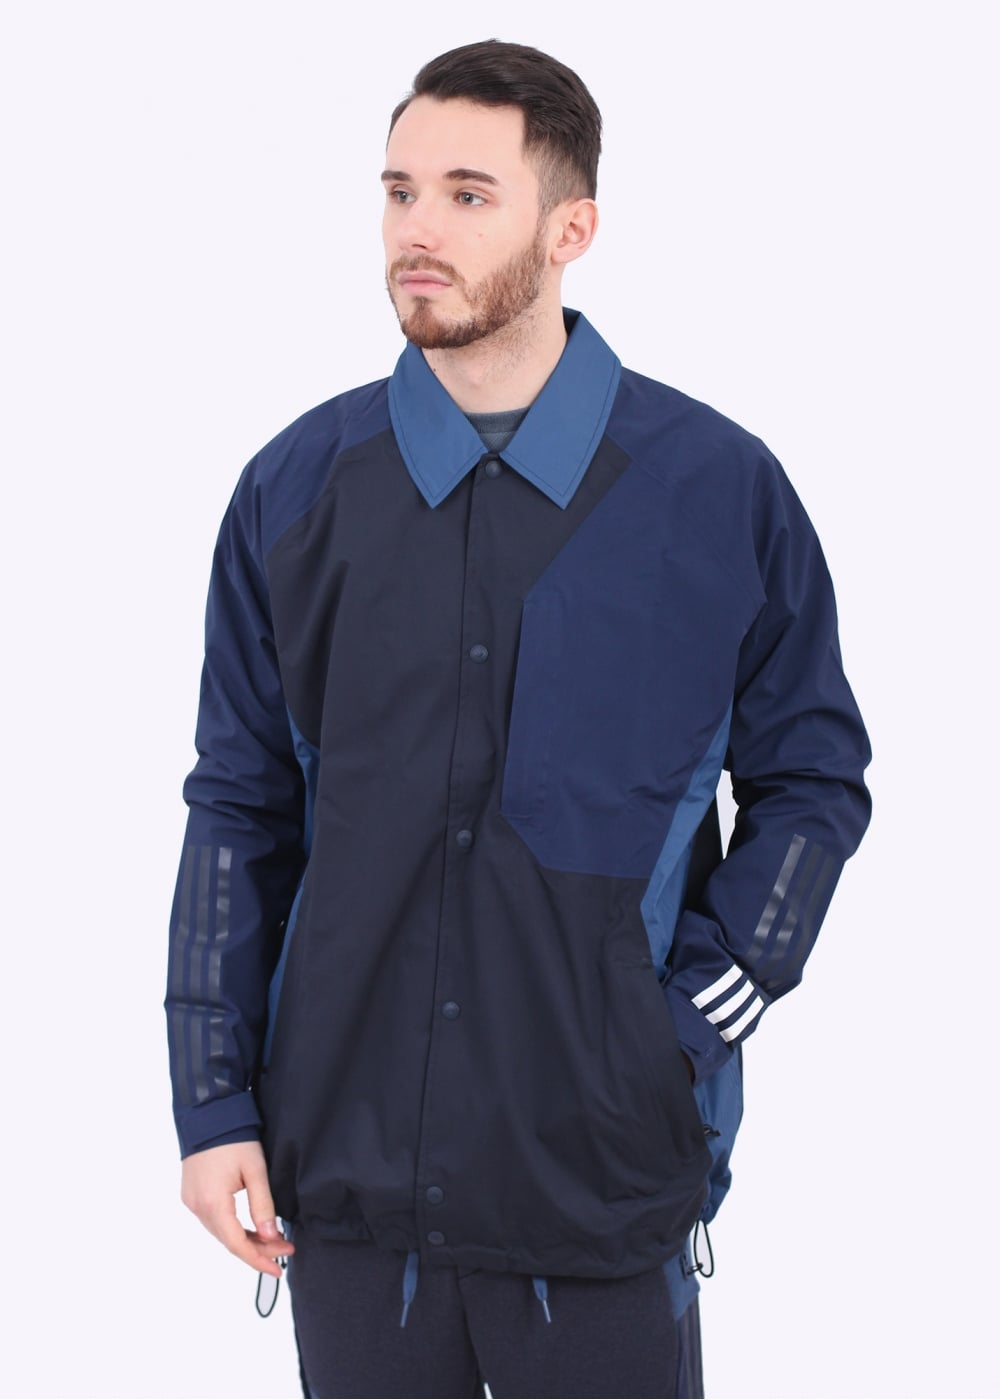 Adidas originals x white mountaineering bench jacket navy Bench jacket